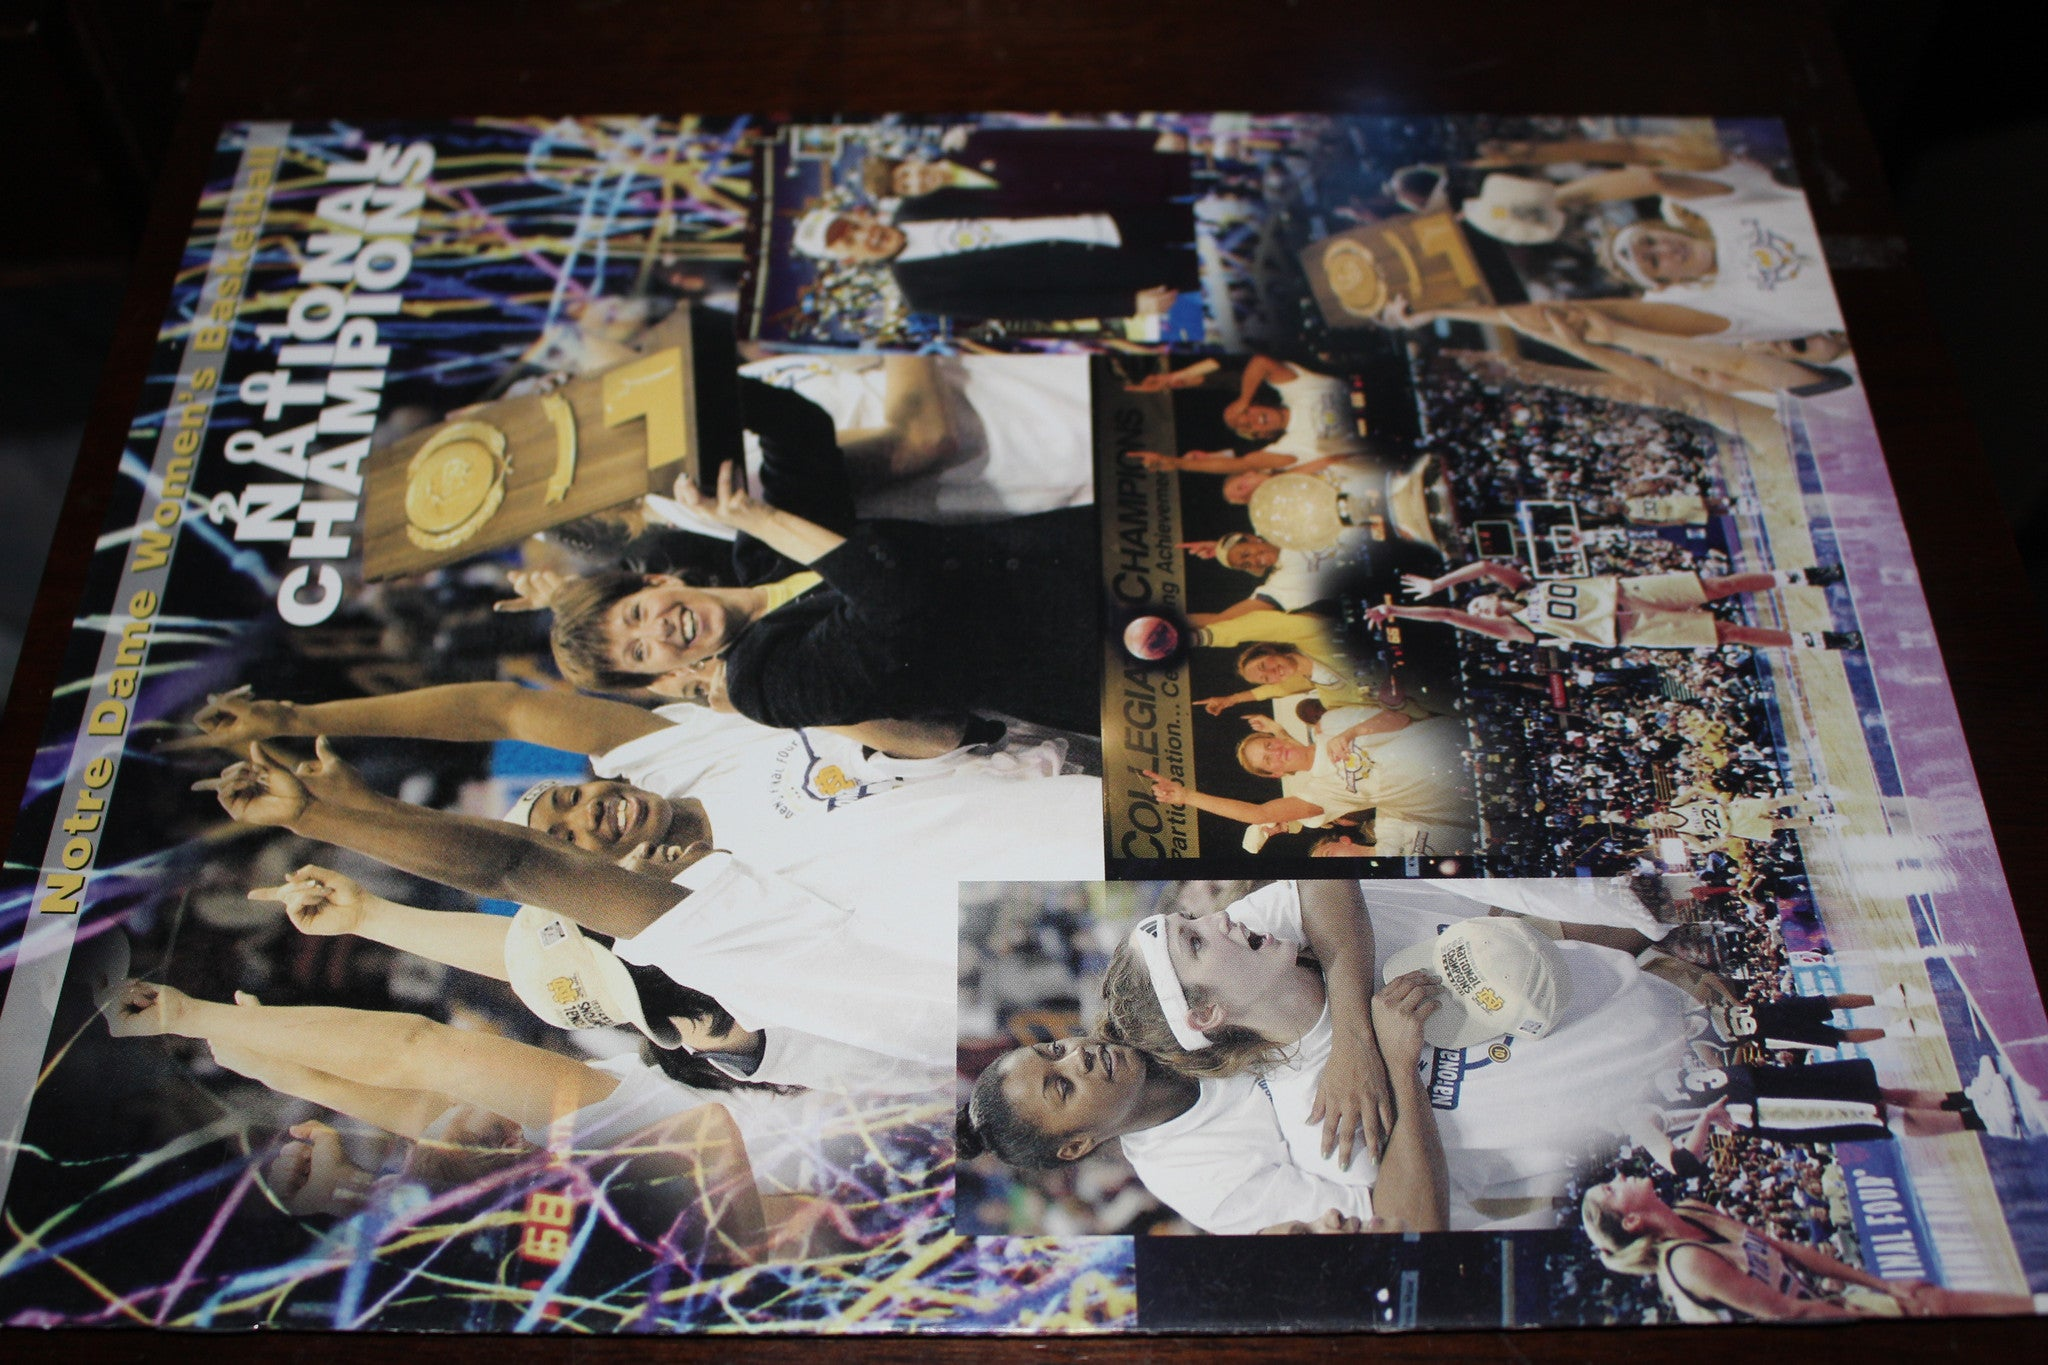 2001 Notre Dame Women's National Basketball Champions Banquet Program - Vintage Indy Sports